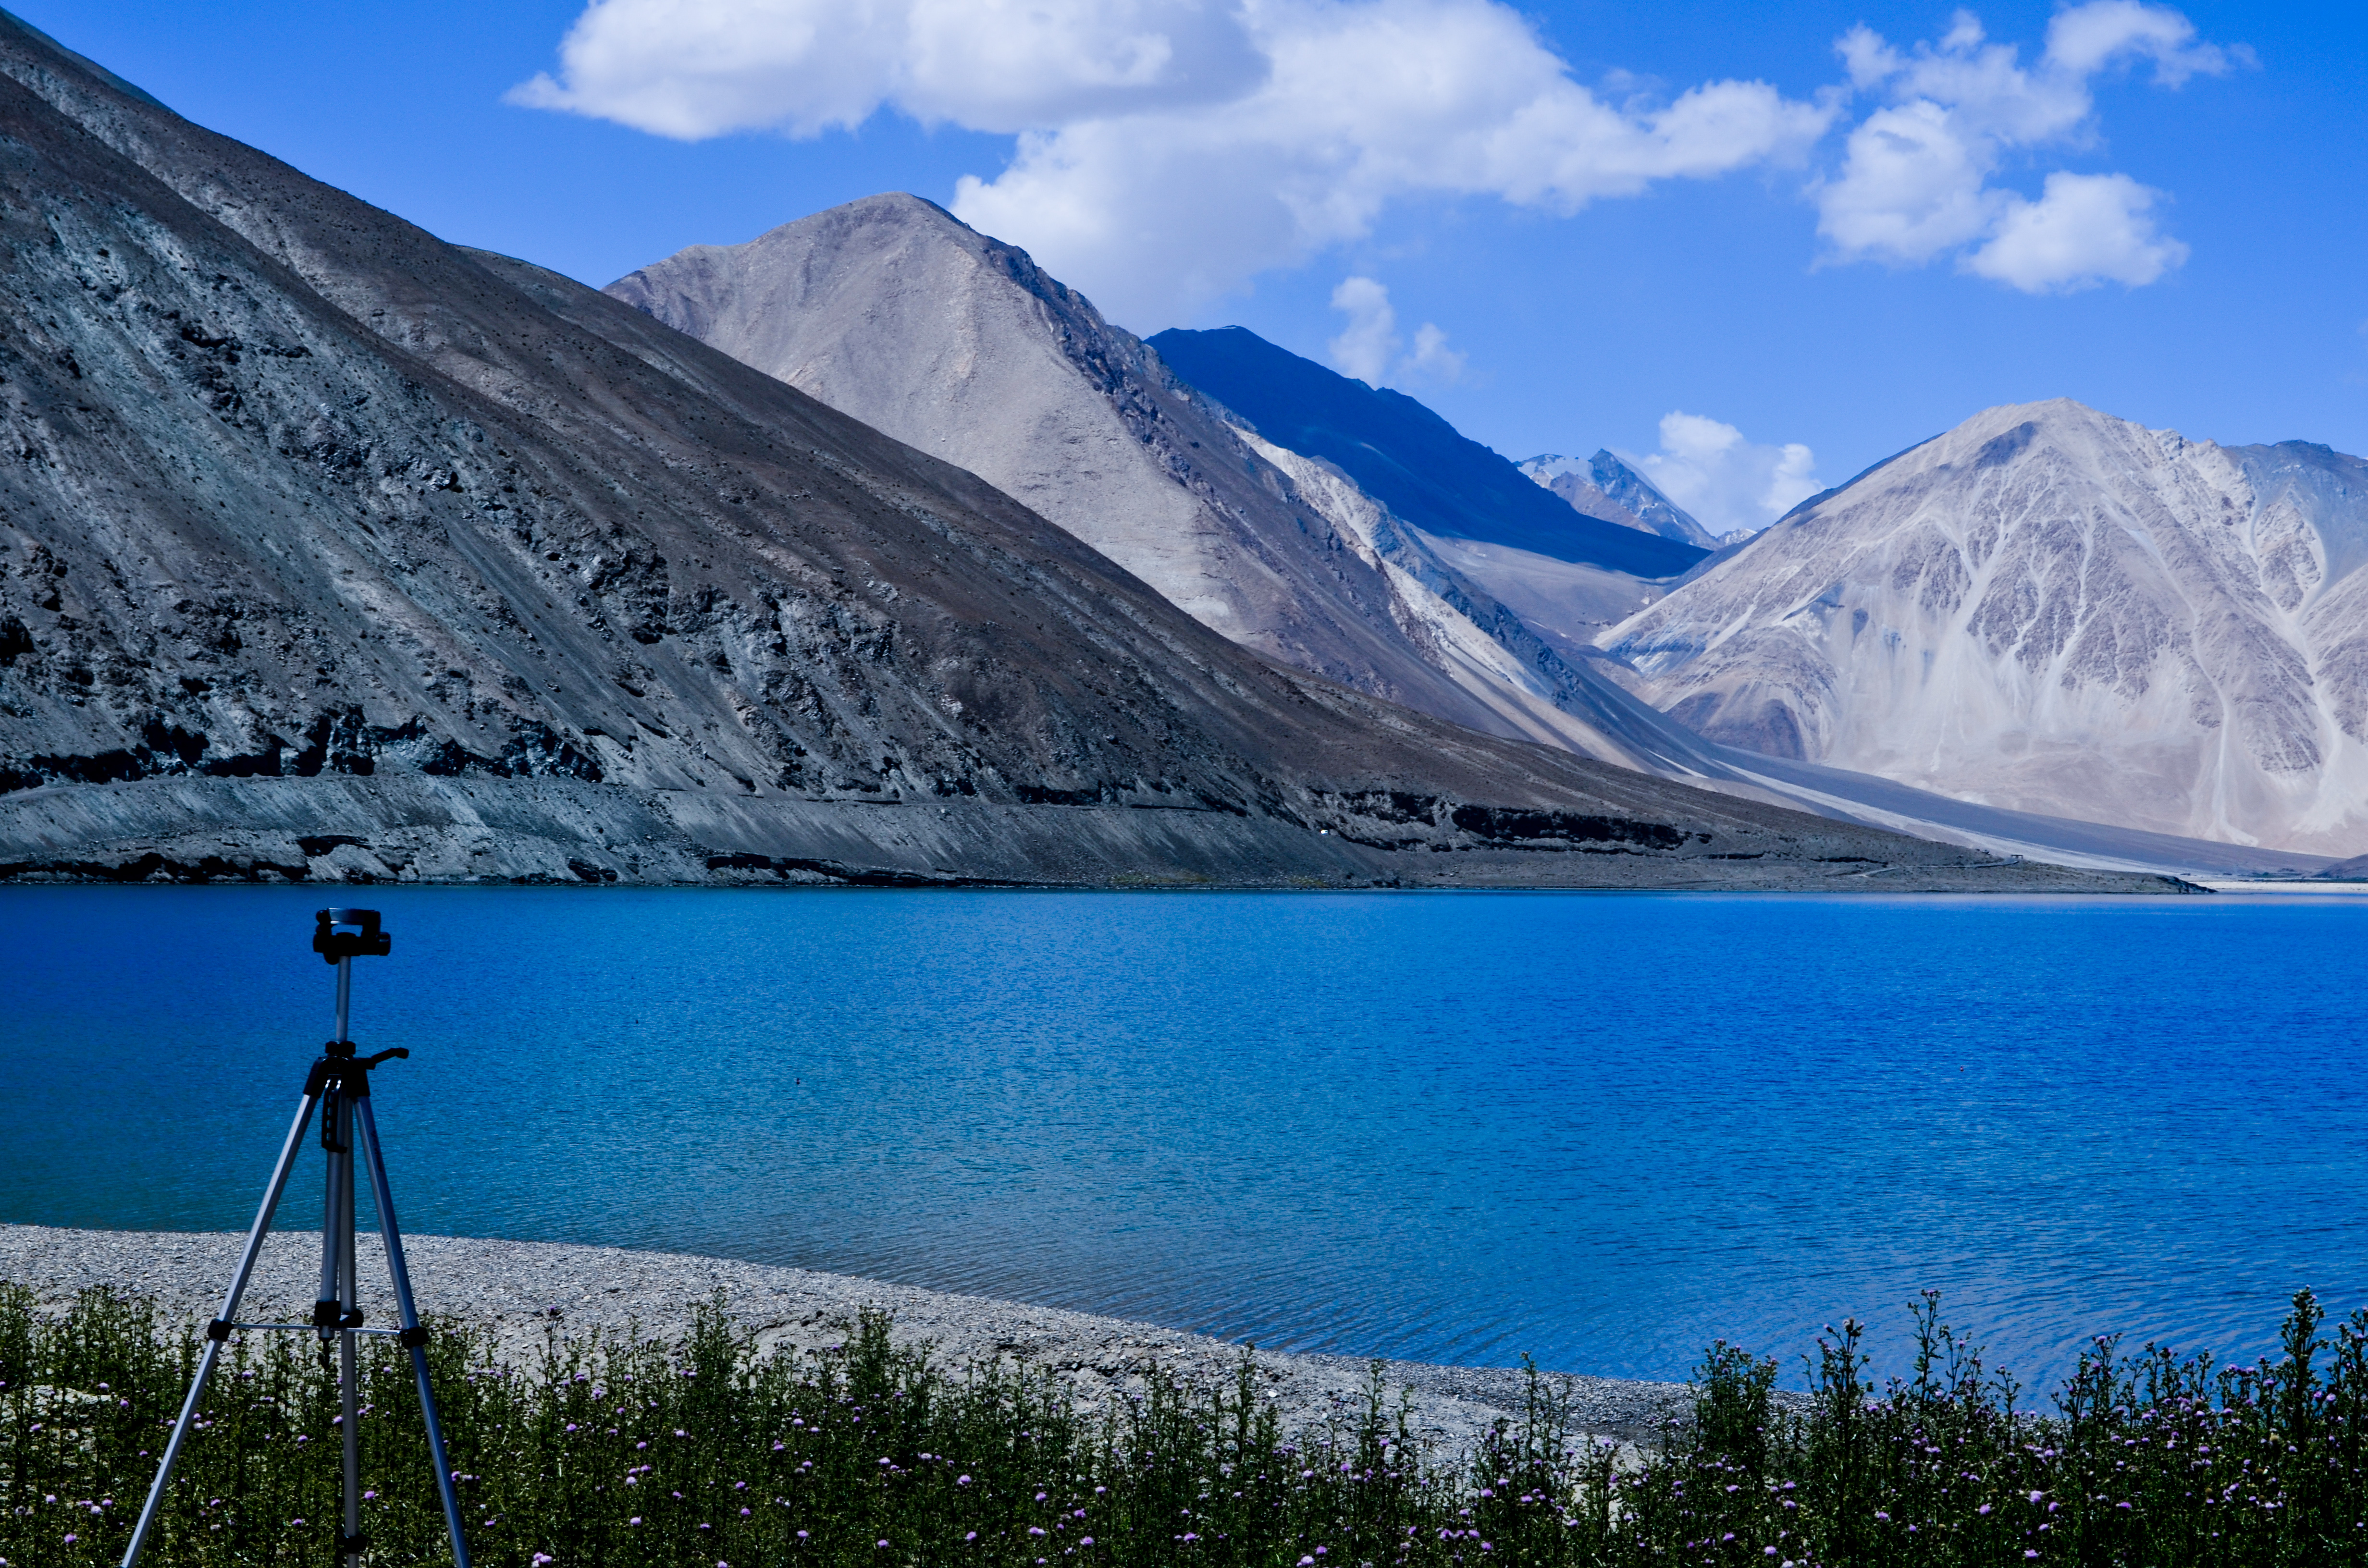 File:Pangong Tso Lake, Ladakh.jpg - Wikimedia Commons